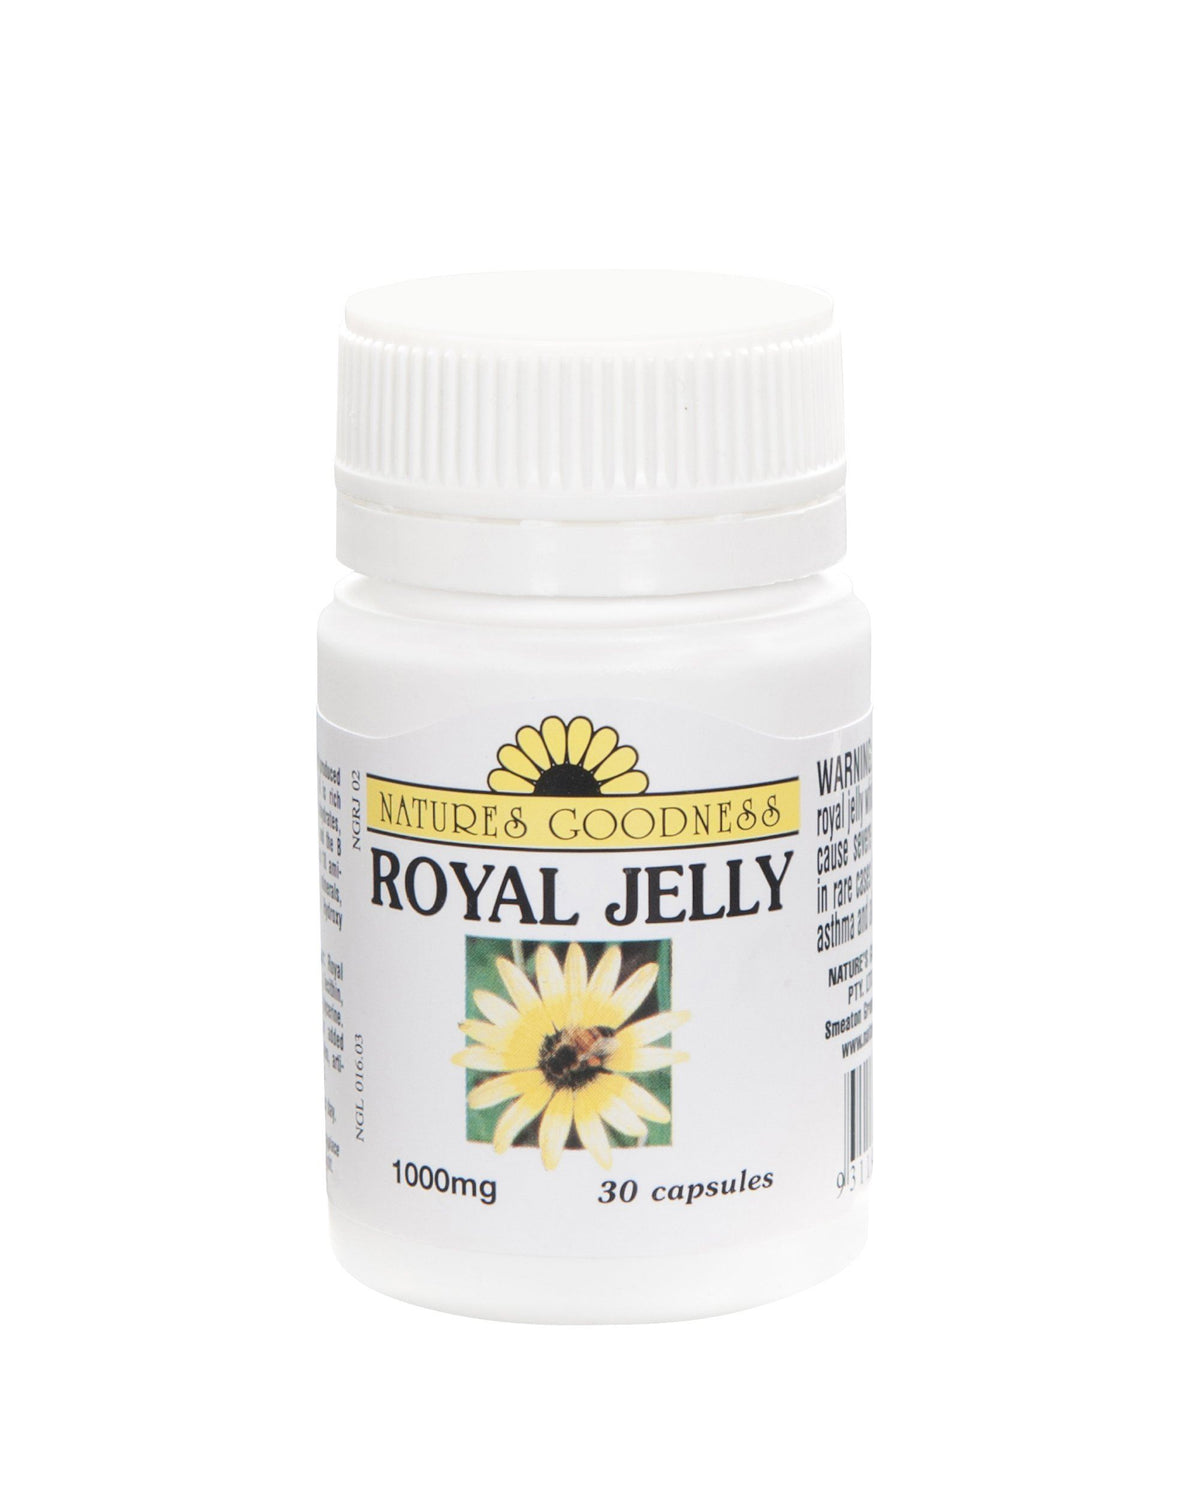 Nature's Goodness Royal Jelly 1000MG 30C | Mr Vitamins